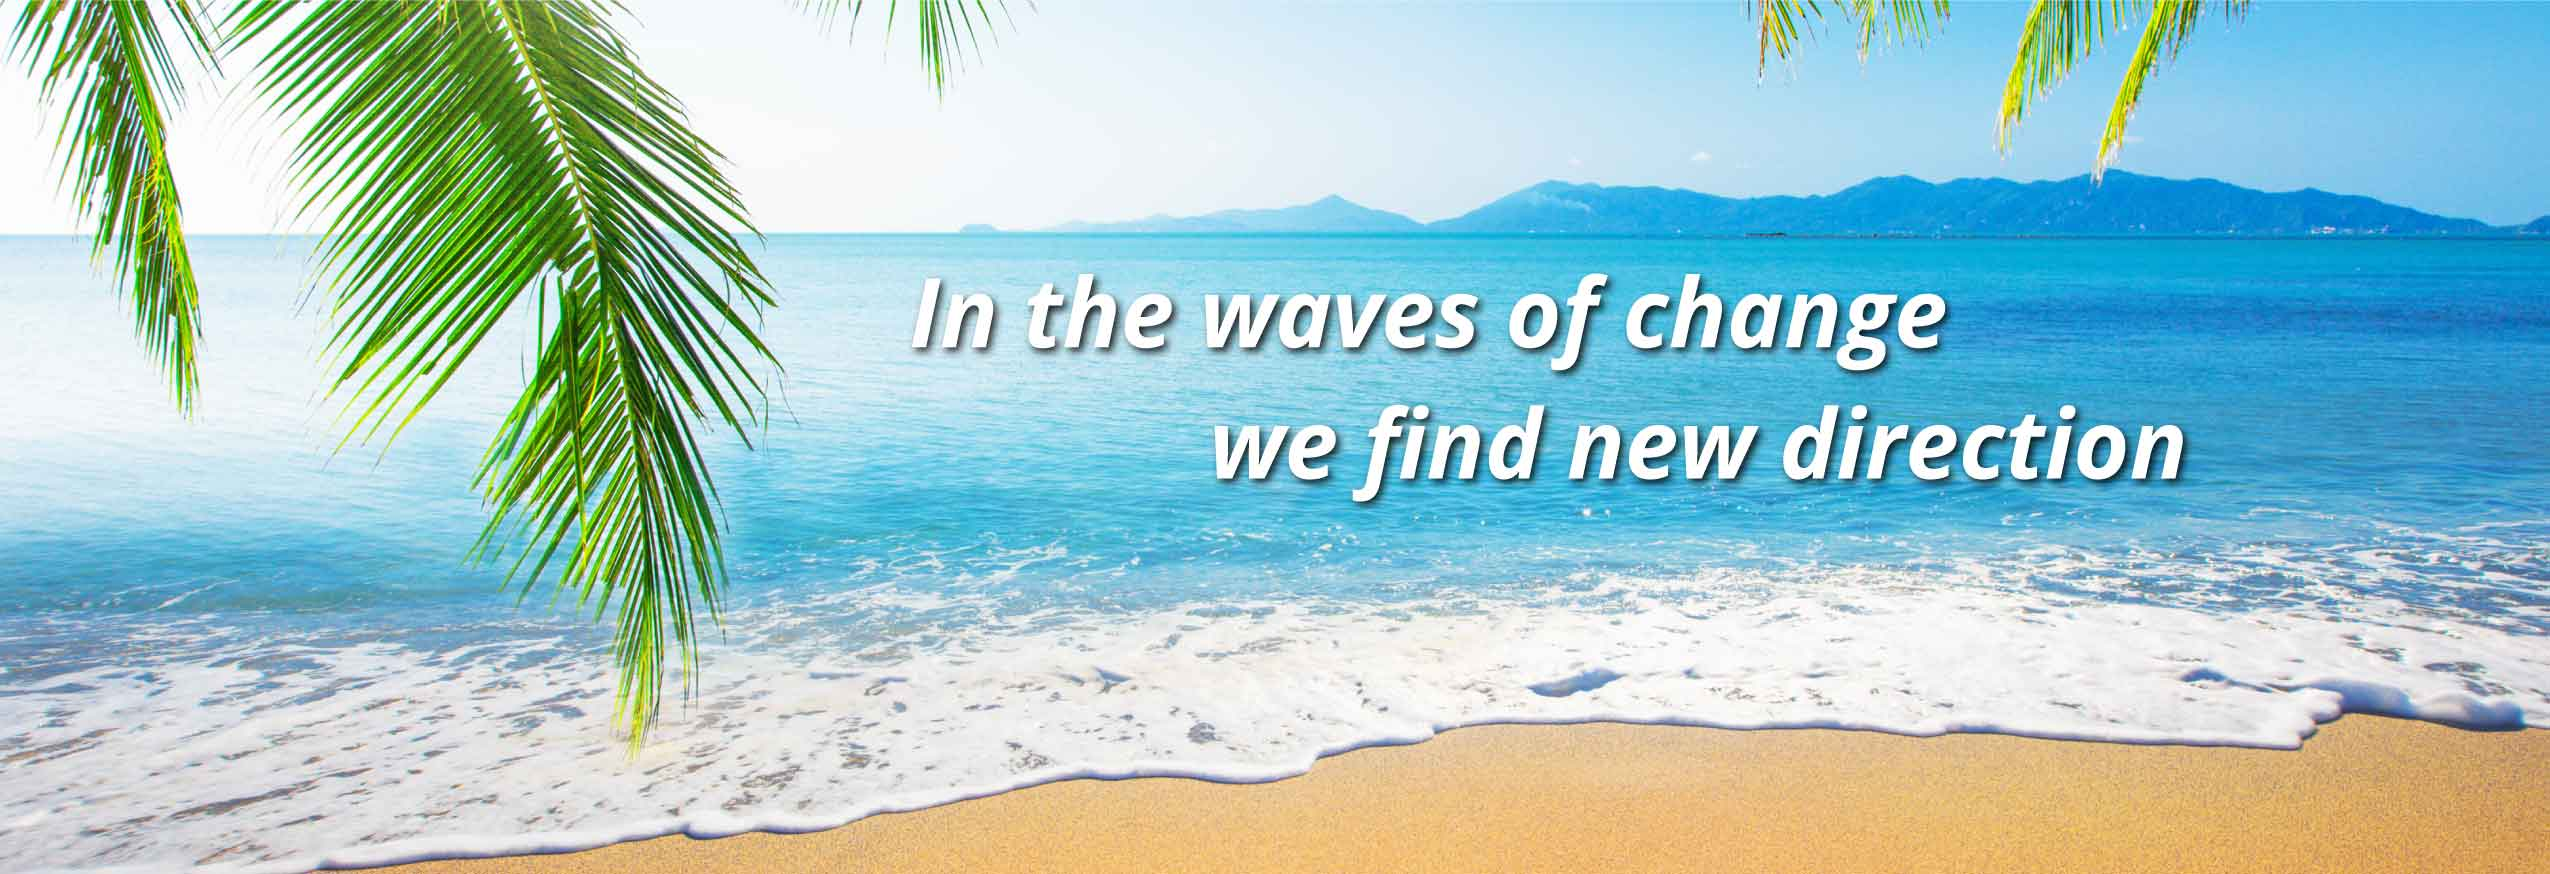 In the waves of changes we find new direction